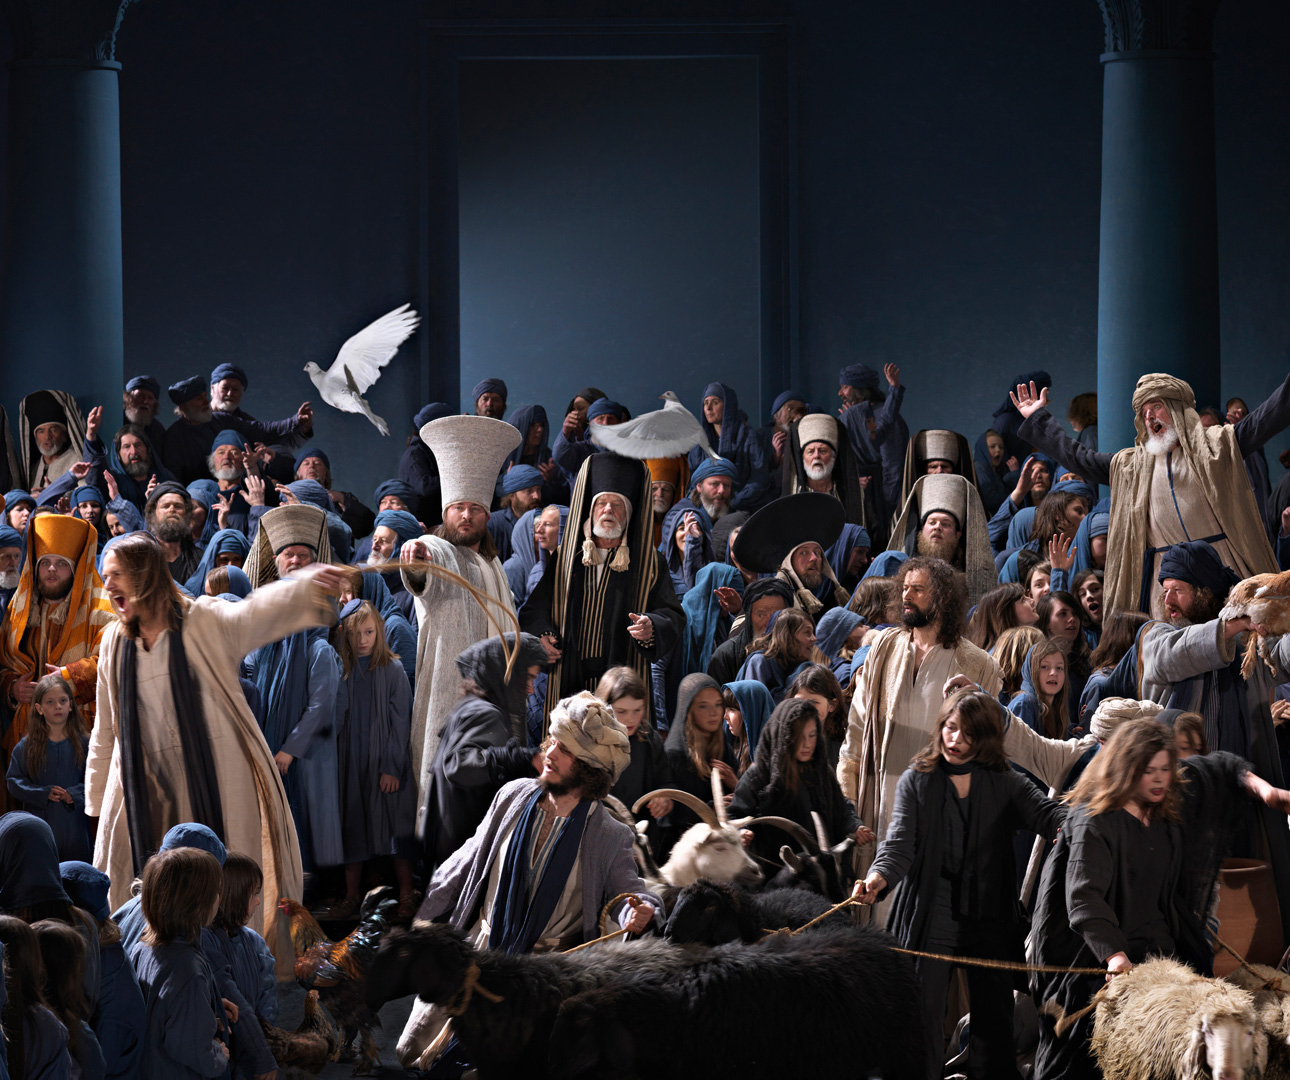 Oberammergau: The Passion Play 2020